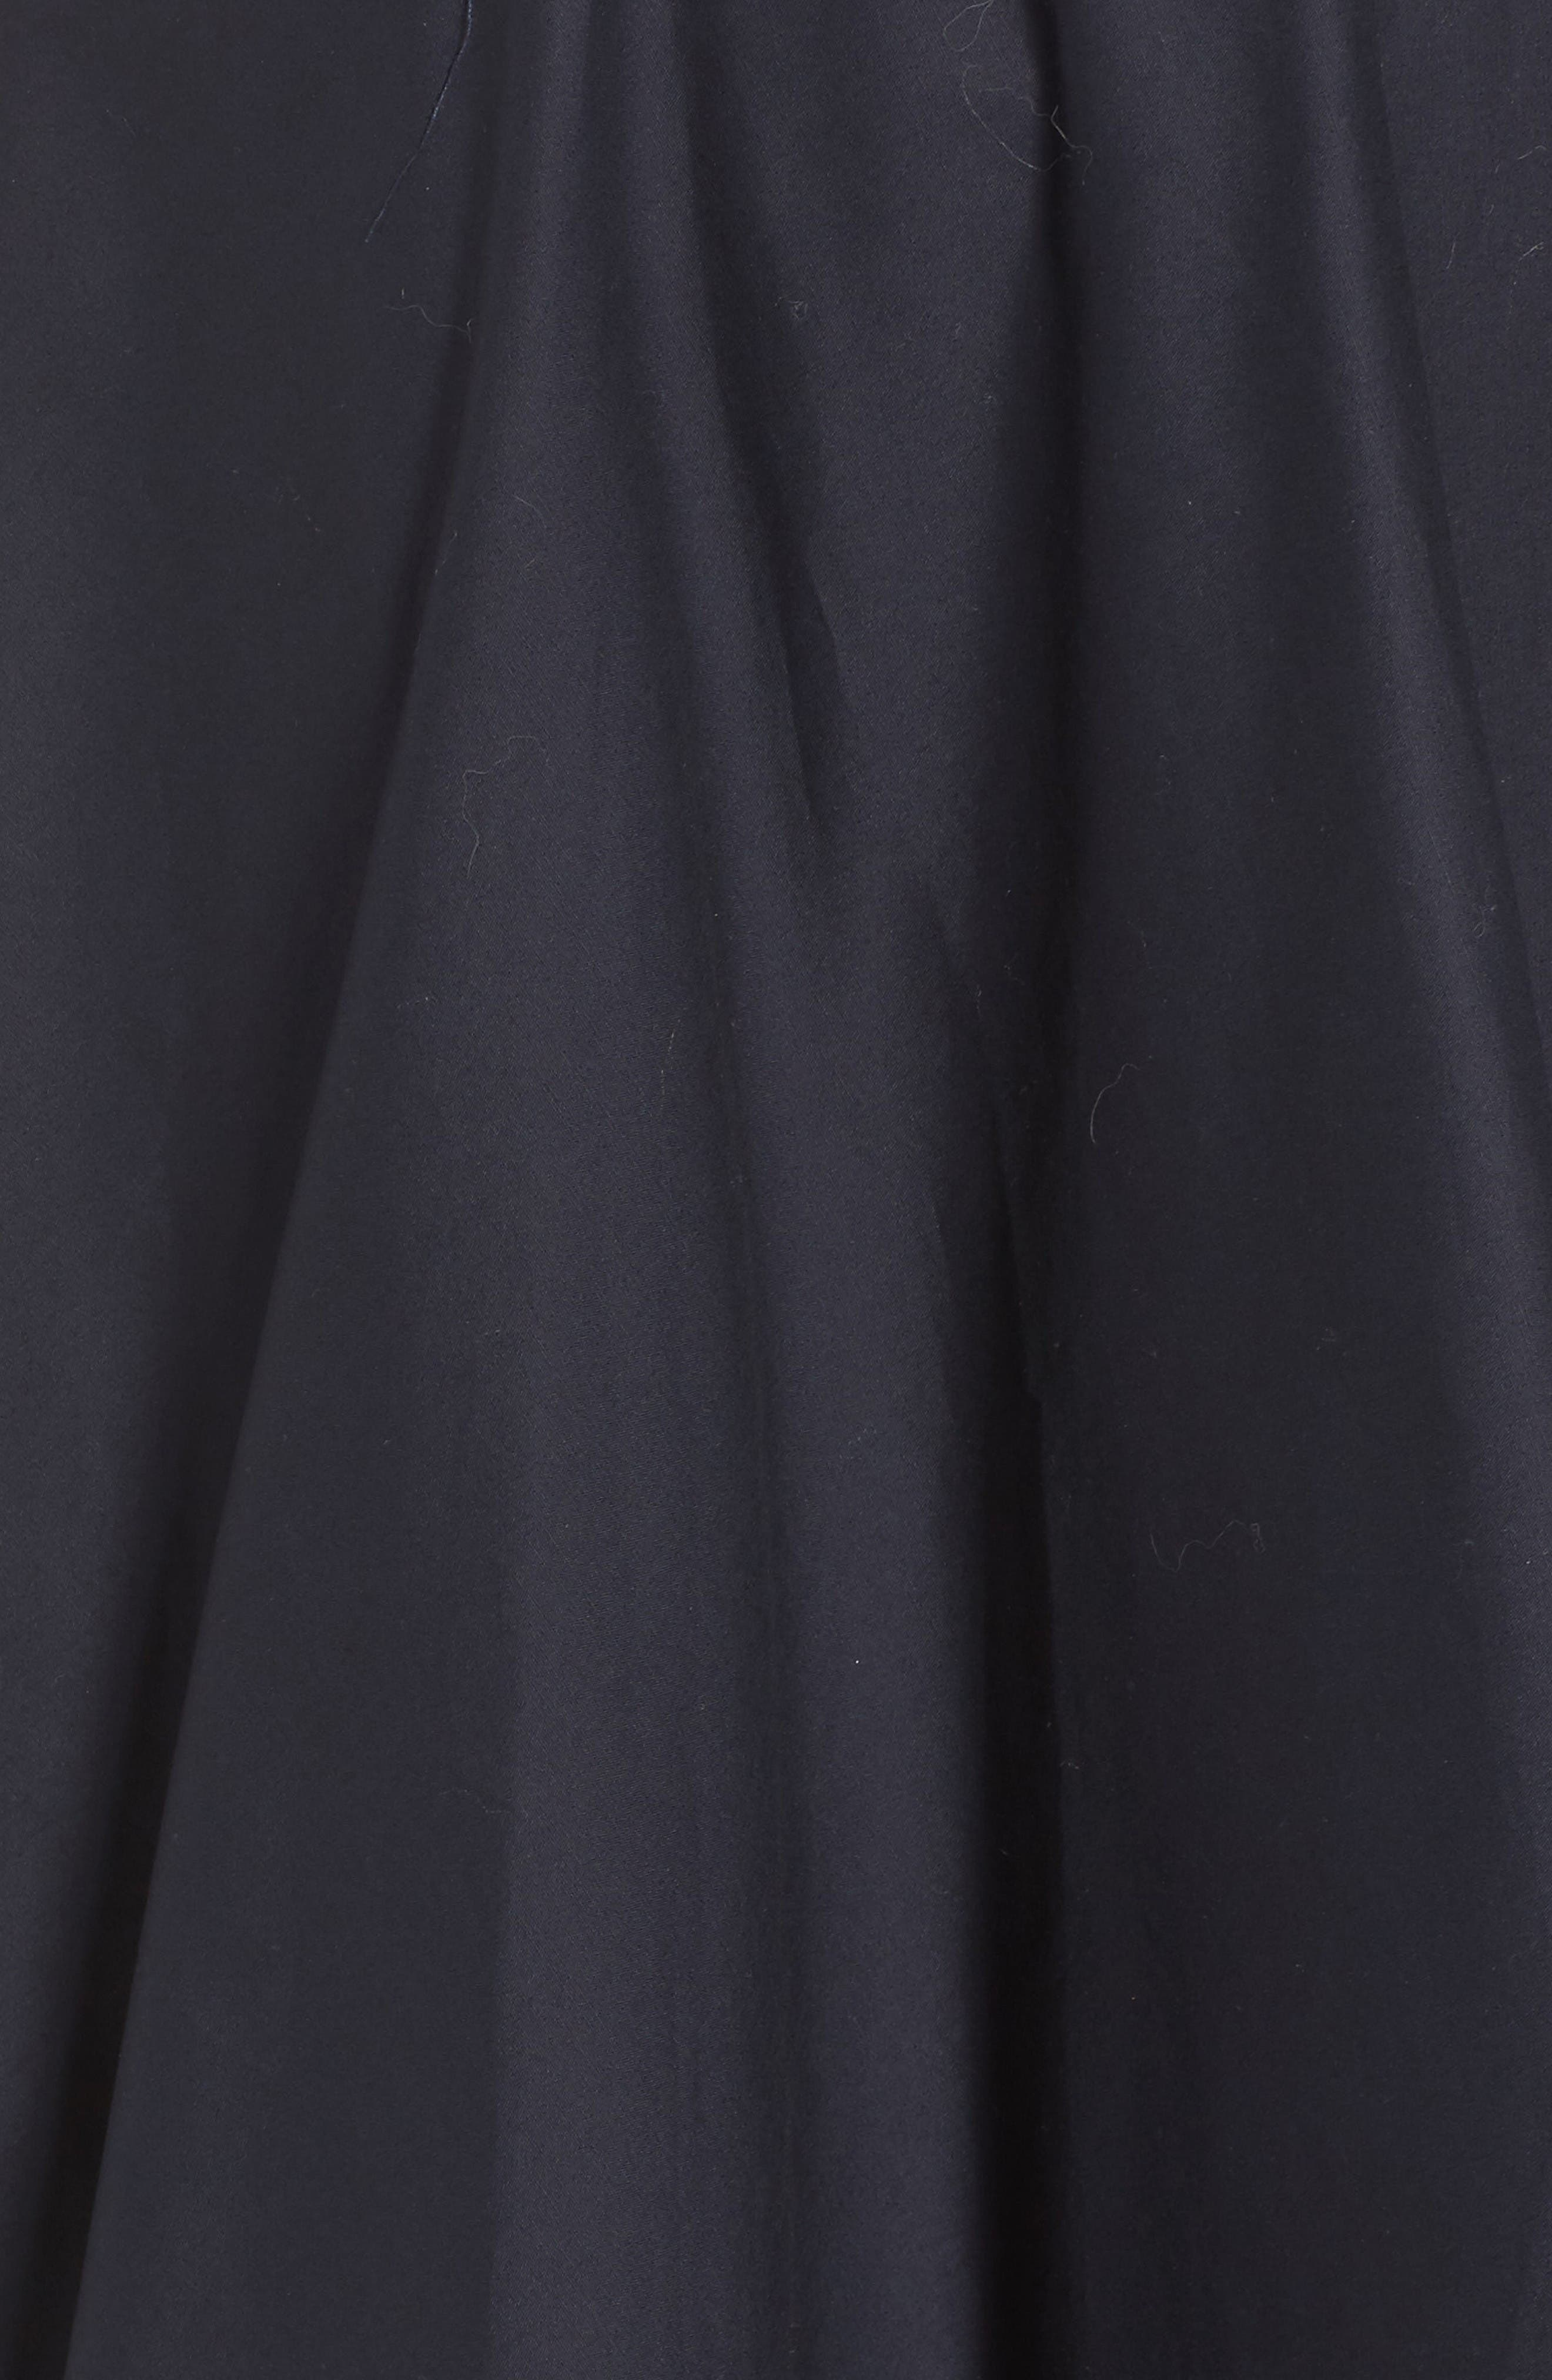 High/Low Dress,                             Alternate thumbnail 5, color,                             Navy